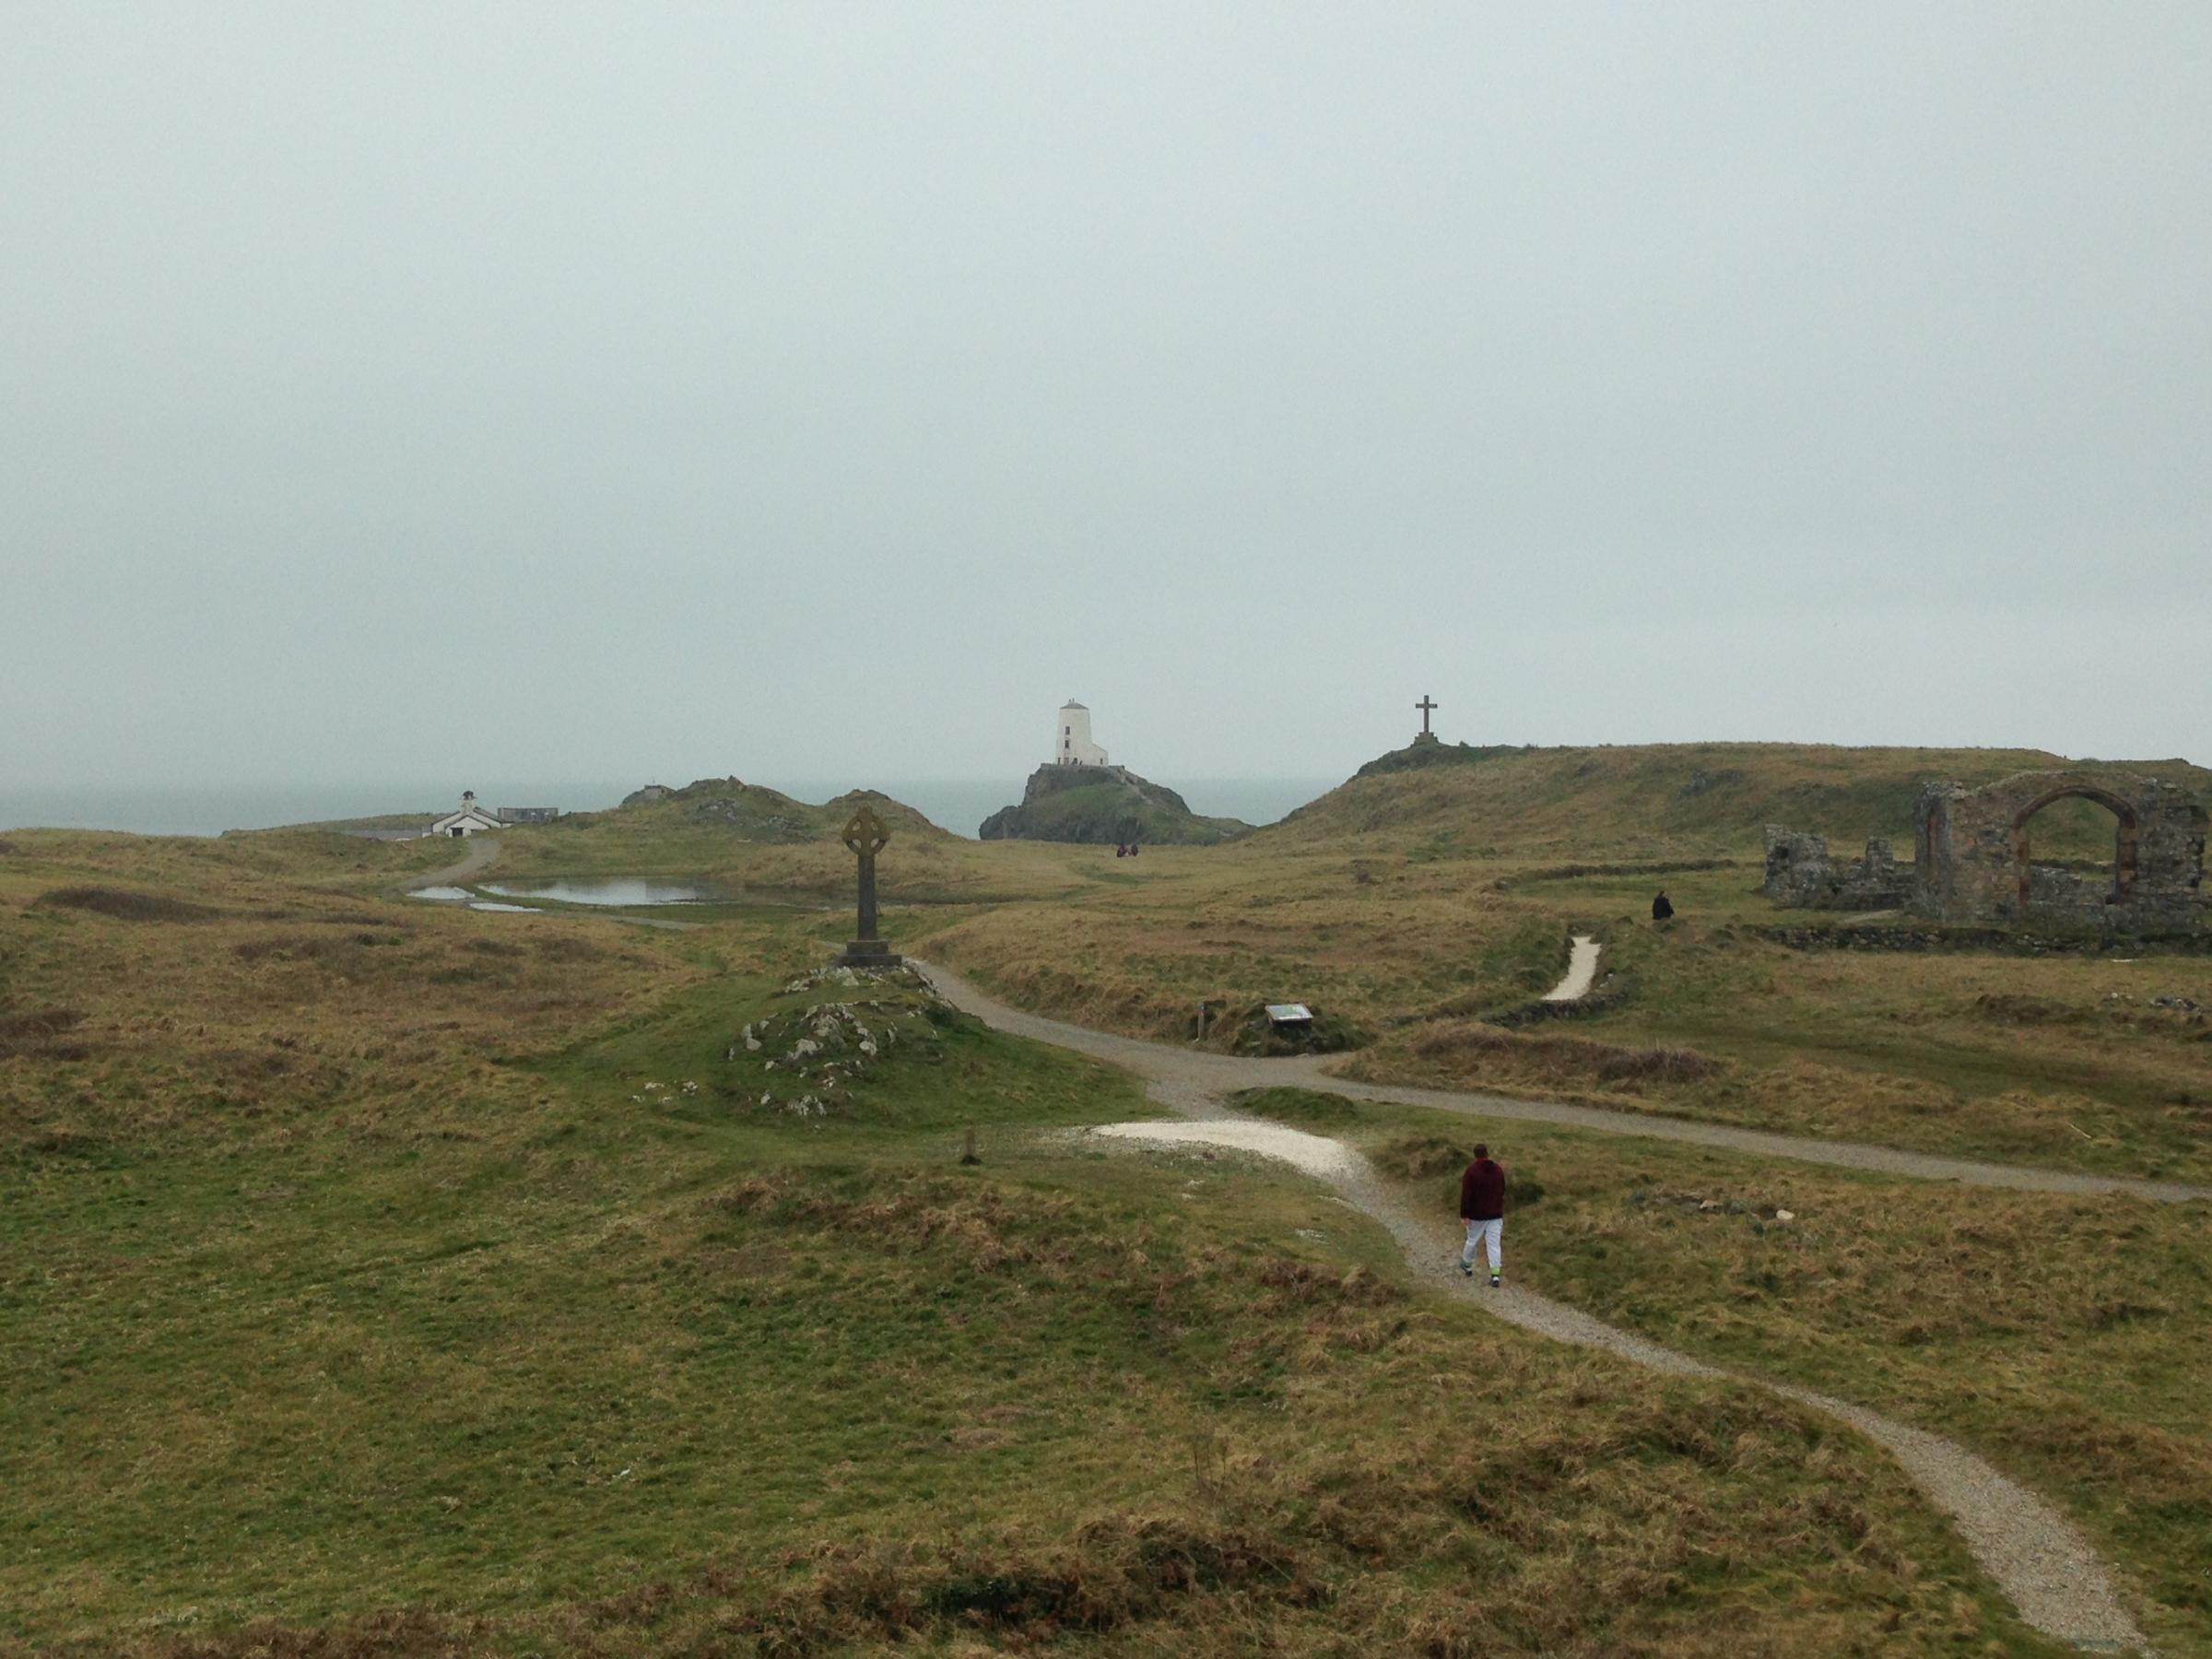 Ynys Llanddwyn, Anglesey. Taken by reporter, free to use by all LDRS partners.